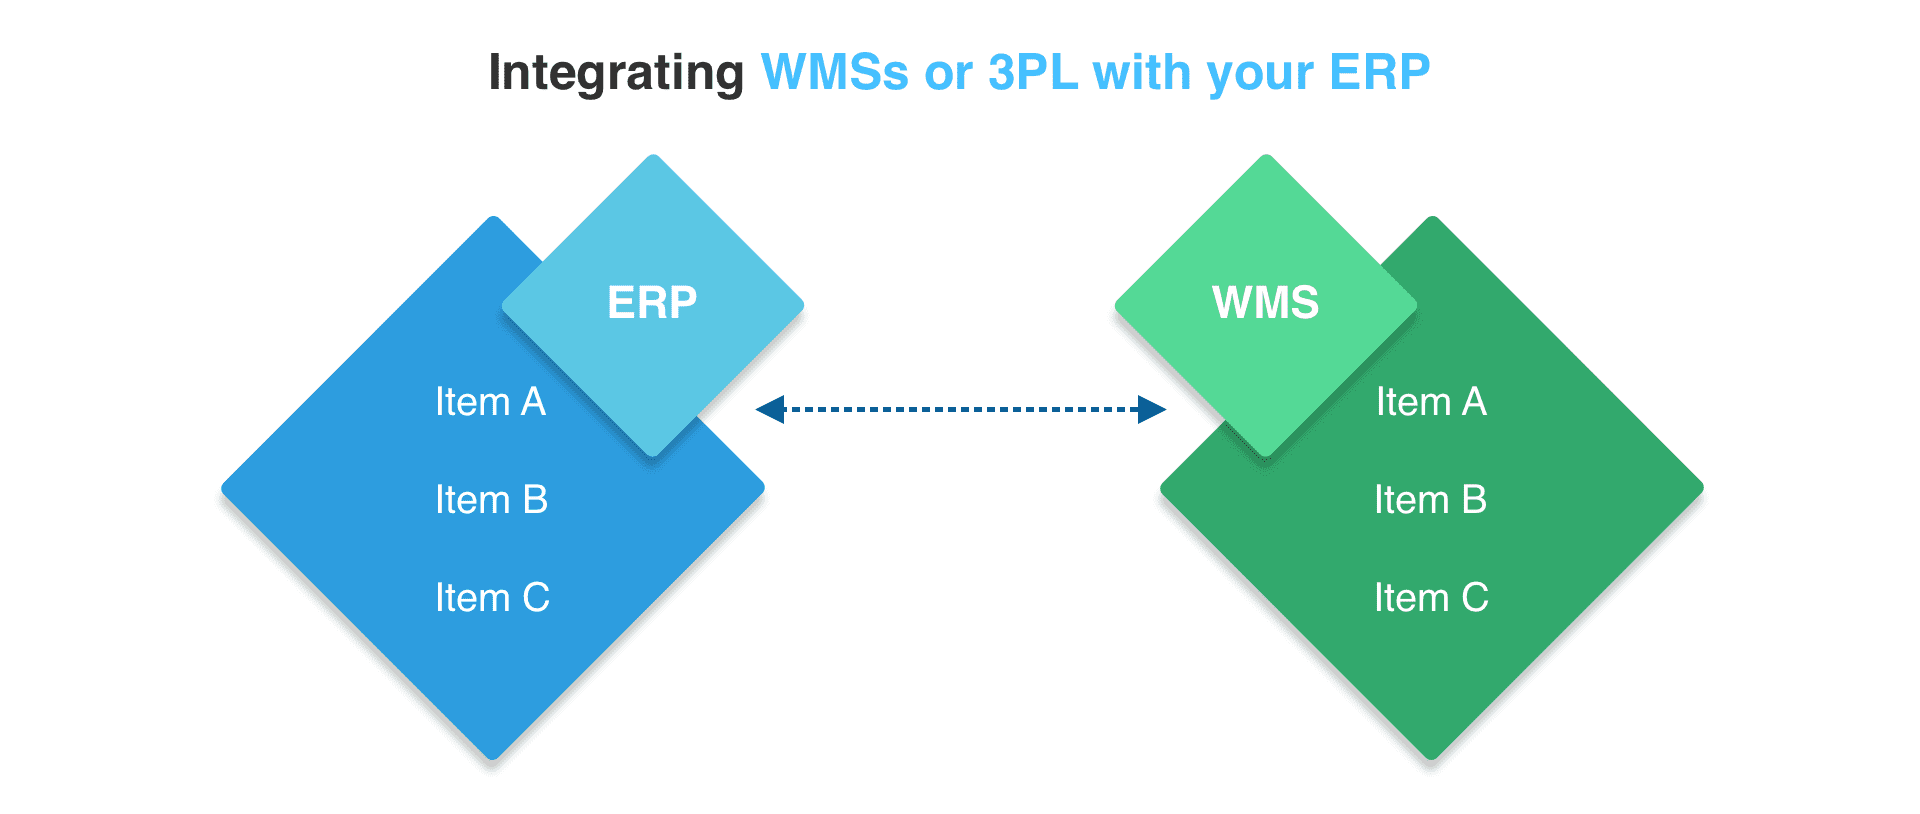 EPR-integrated WMS